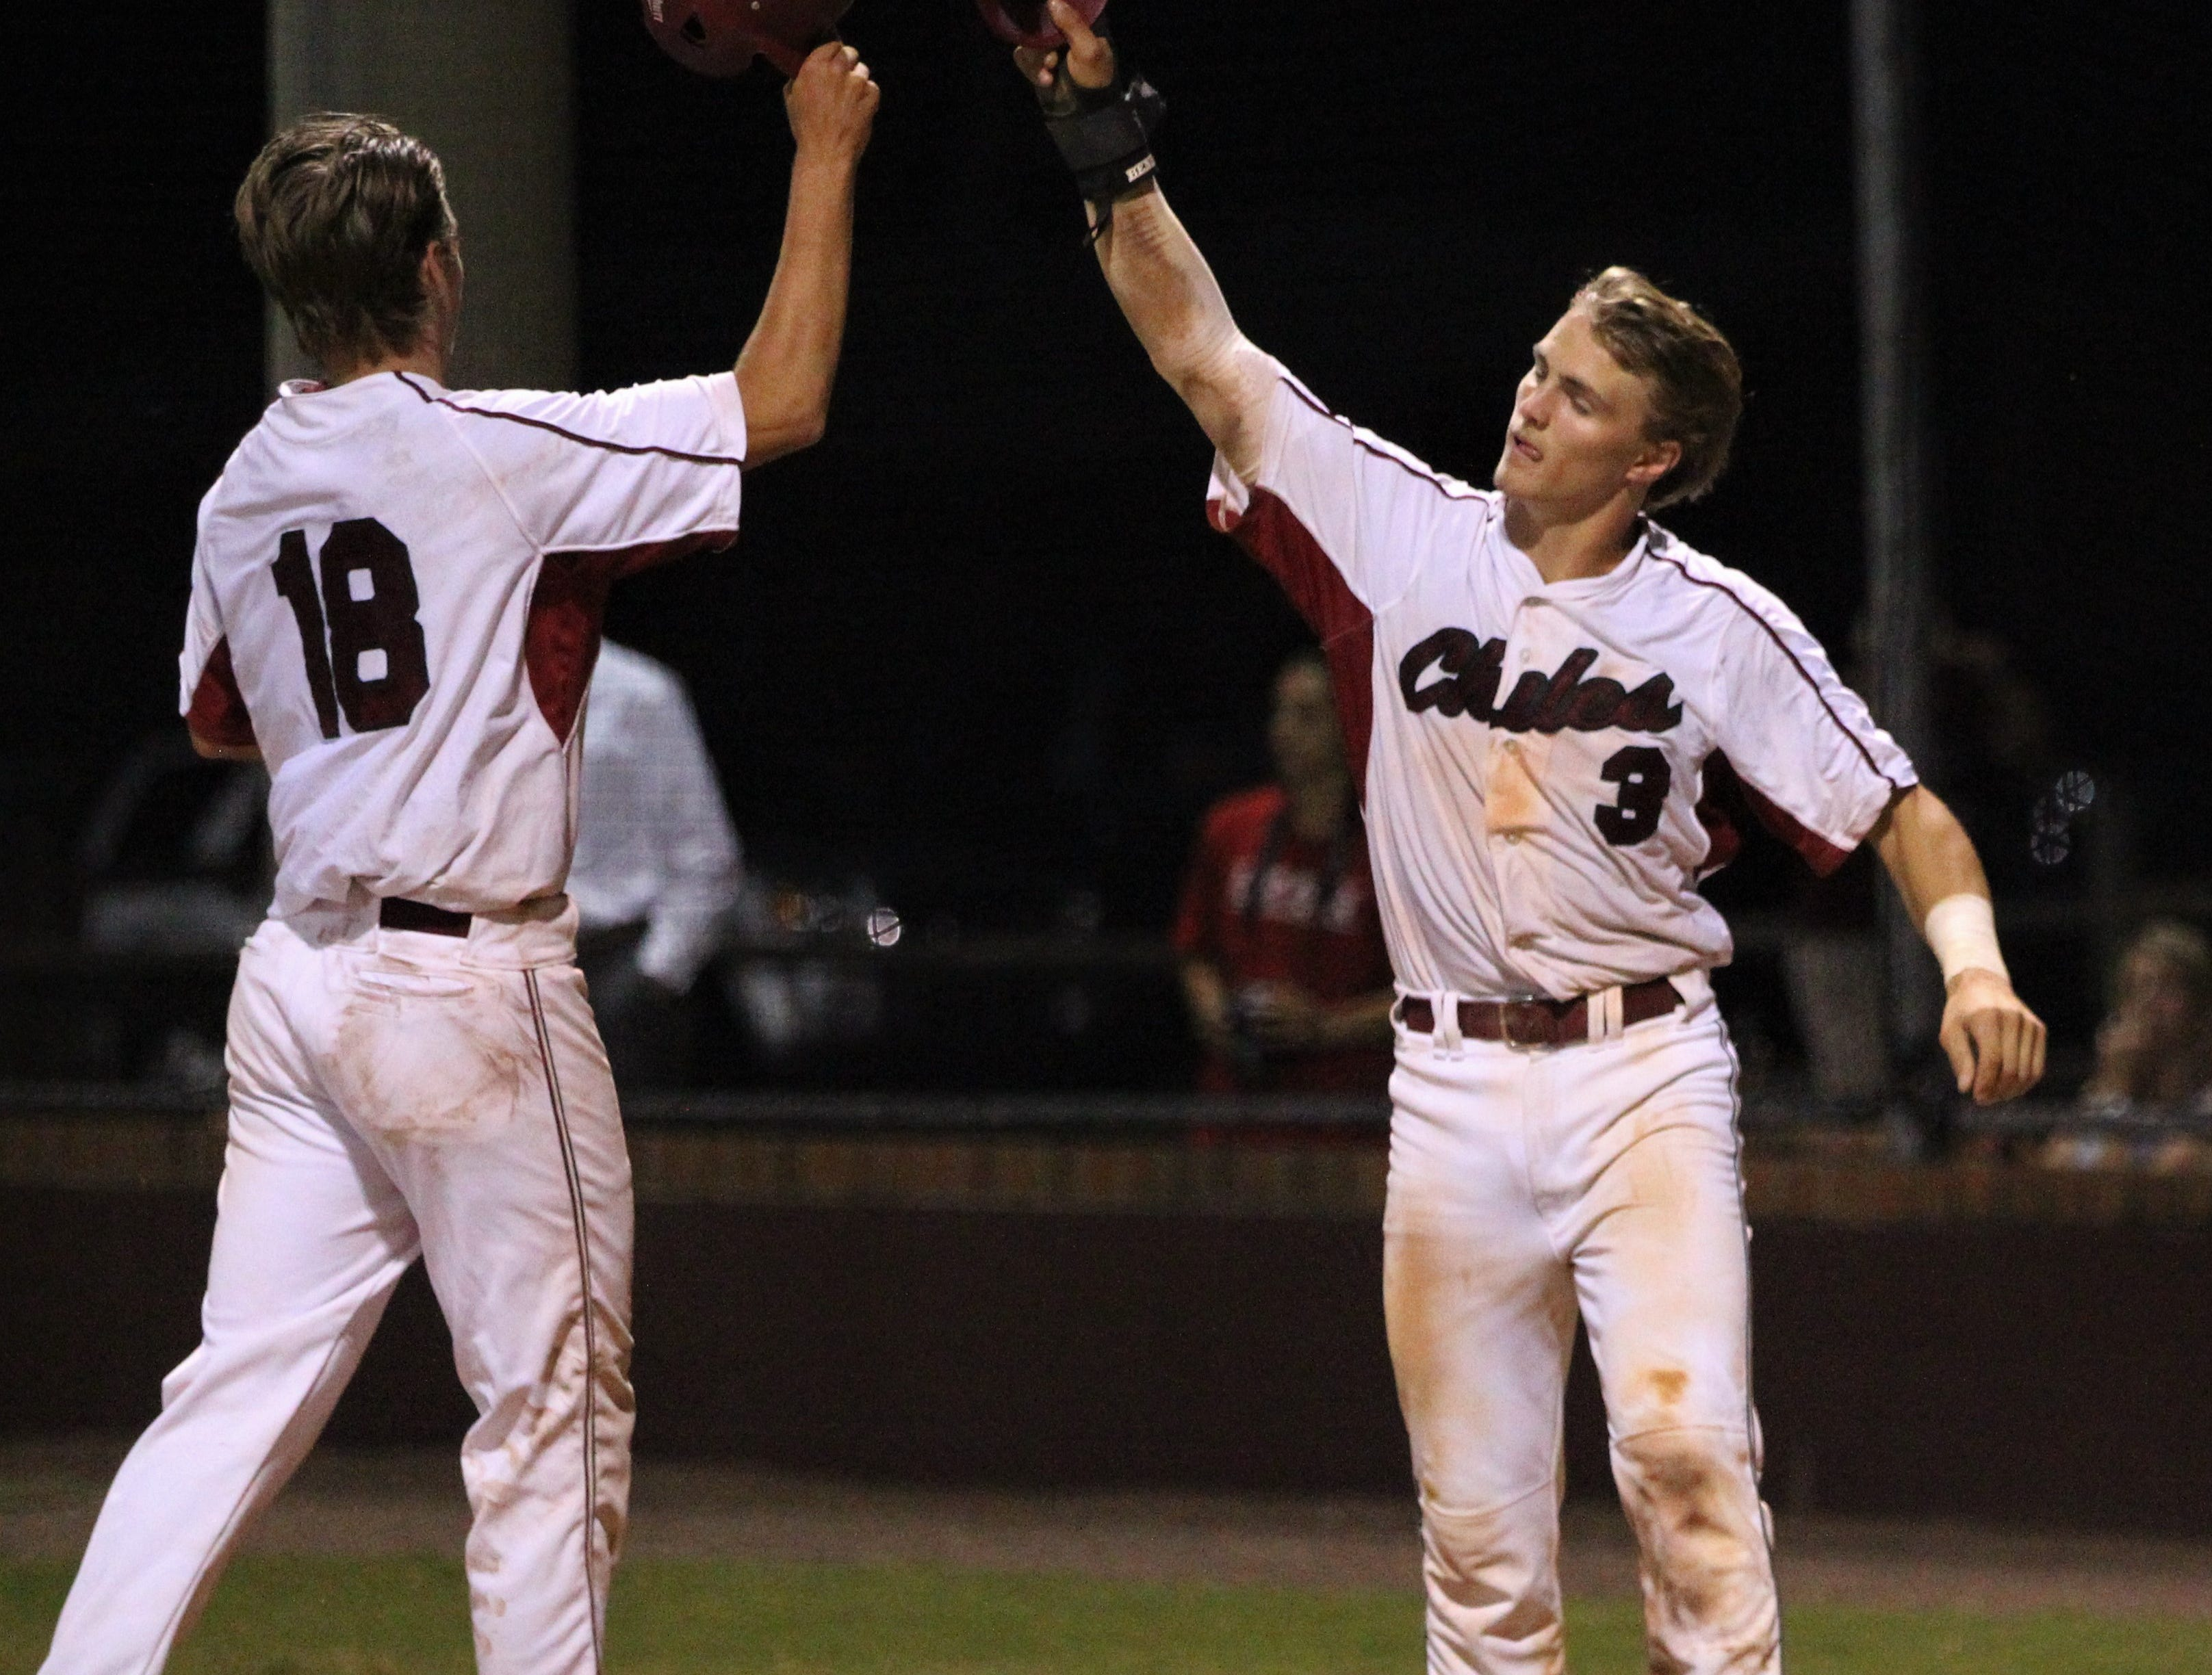 Chiles' William Kilduff (18) and Garrett Greene (3) celebrate scoring two more runs as Chiles beat Leon 10-6 during a District 2-8A semifinal on May 7, 2019.